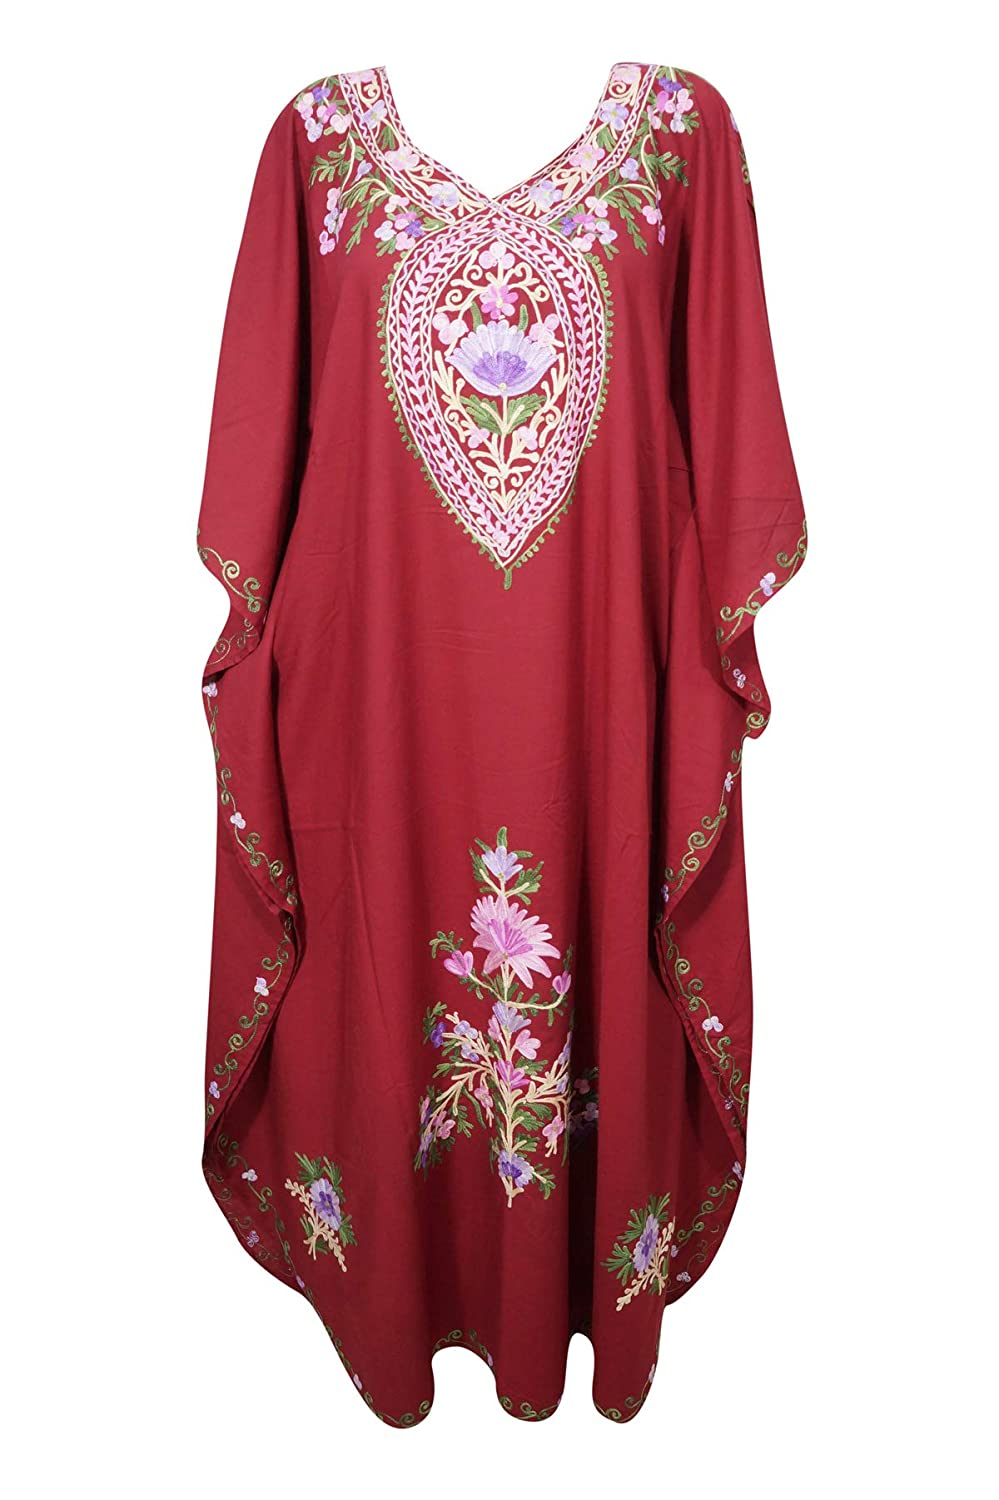 681debf7df Womens Caftan Dress Red Embellished Lounge Kaftan One Size at Amazon  Women's Clothing store: